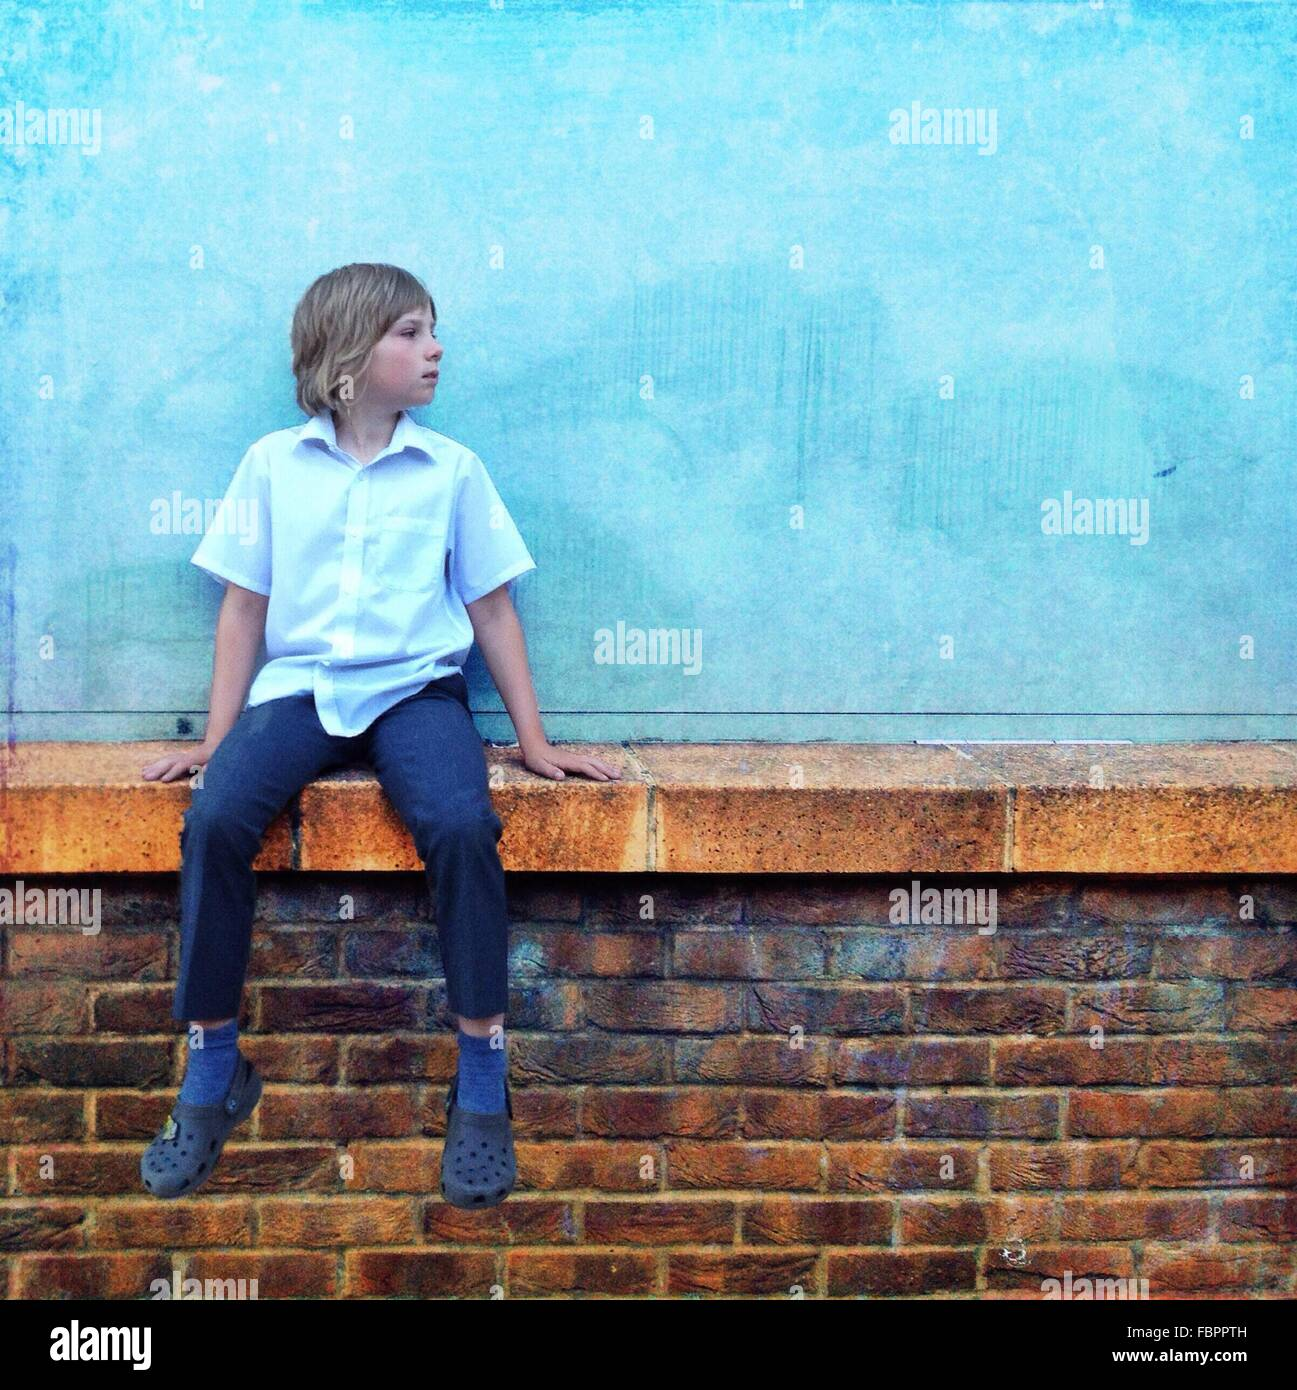 Teenage Boy Wearing Blue shirt et jeans Sitting on Wall Photo Stock